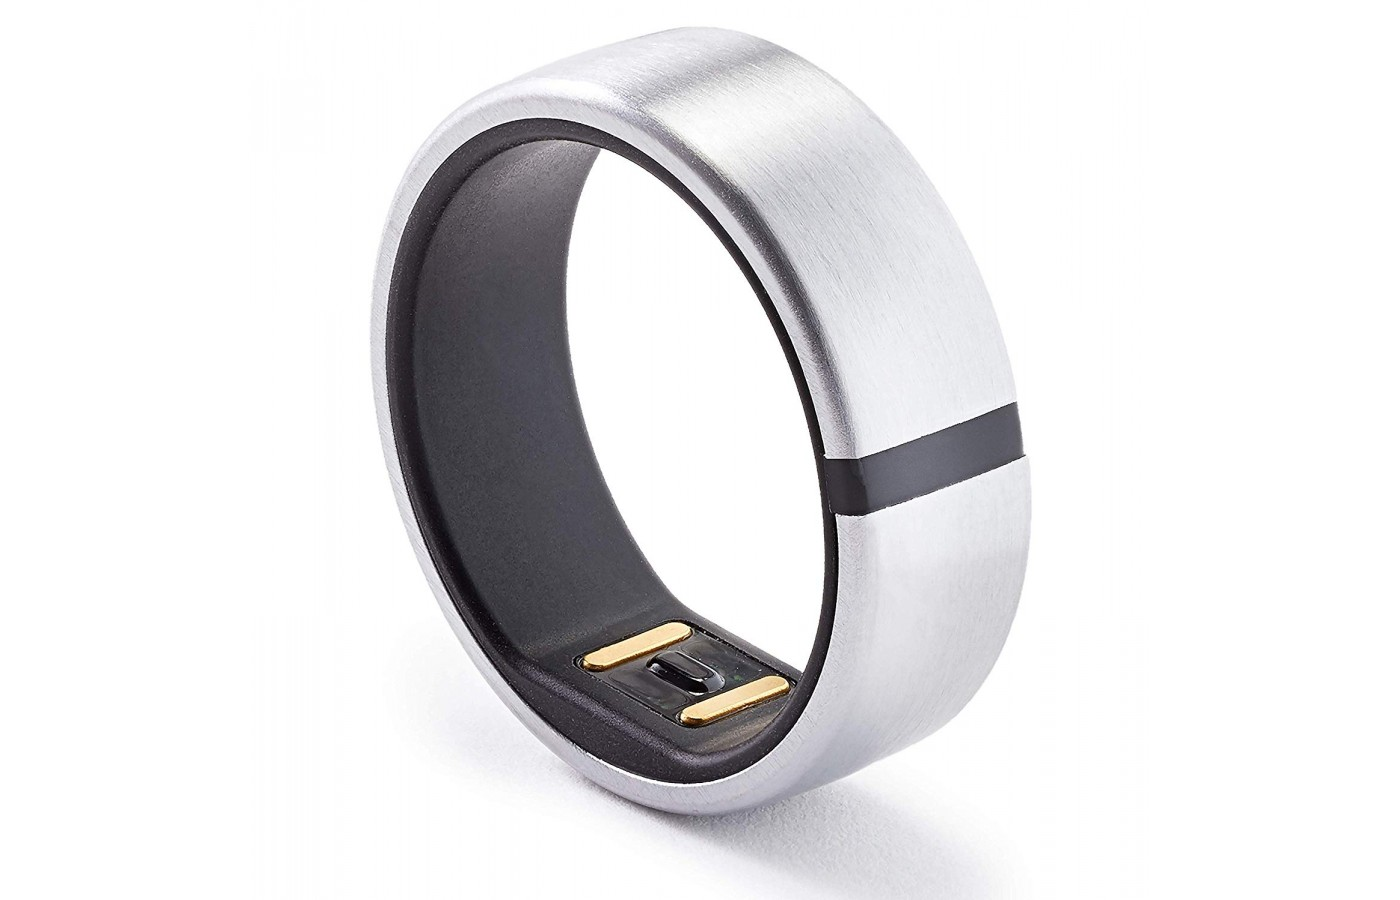 With sleek minimalism trending and fitness tracking as widespread as it is, the fact that a fitness tracking ring exists should come as little surprise.